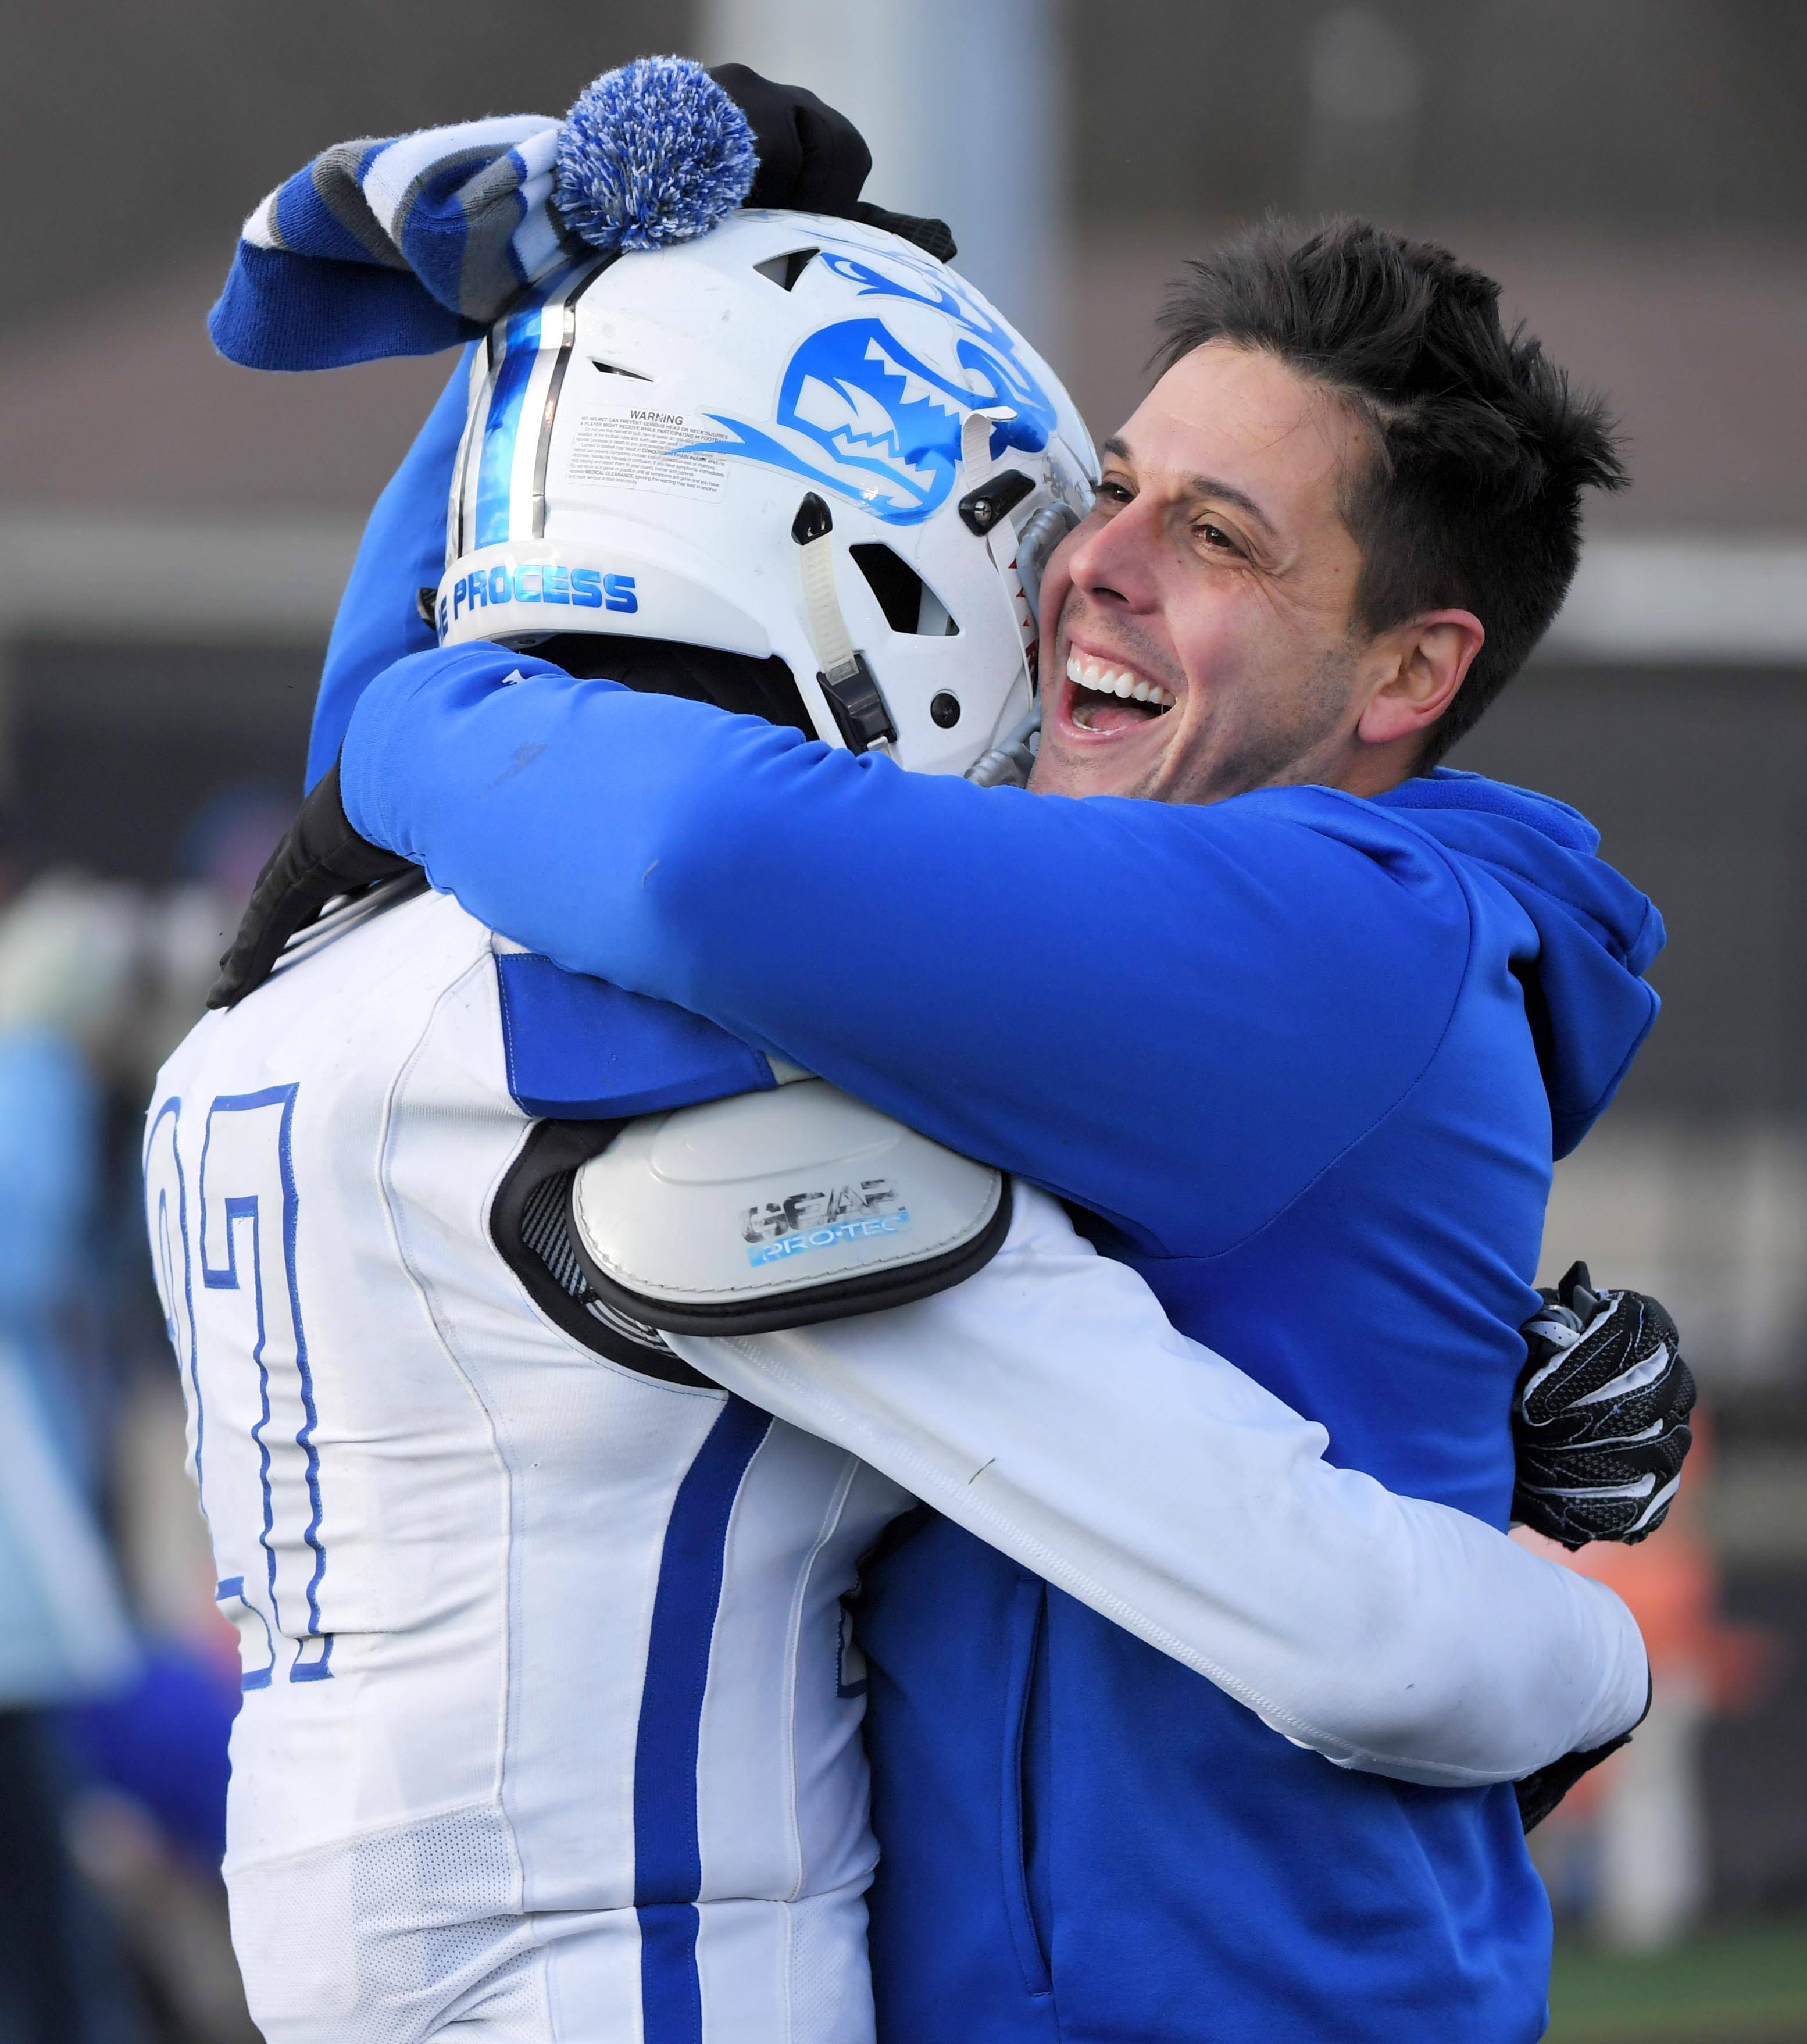 St. Charles North head coach Rob Pomazak hugs Tyler Nubin after the North Stars win against Wheaton Warrenville South Saturday in a quarterfinal playoff football game in Wheaton.